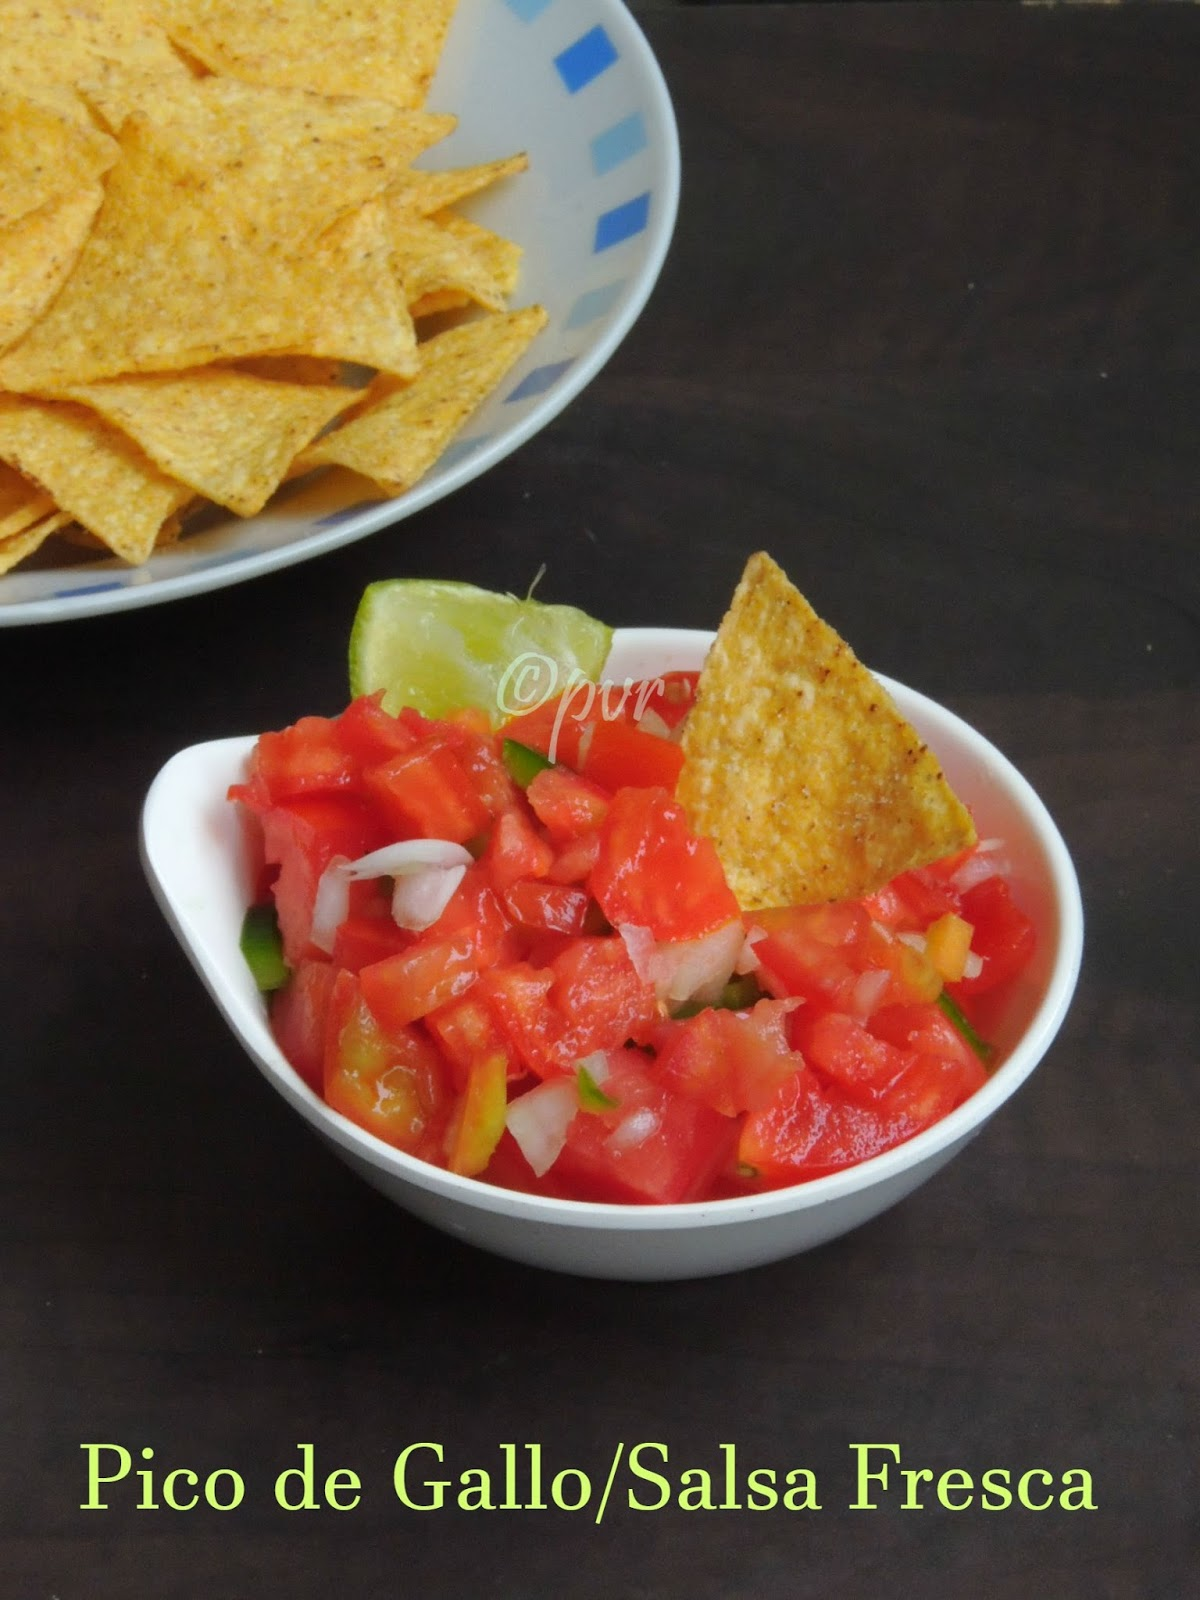 ... pico de gallo salsa the splendid table pico de gallo salsa flickr